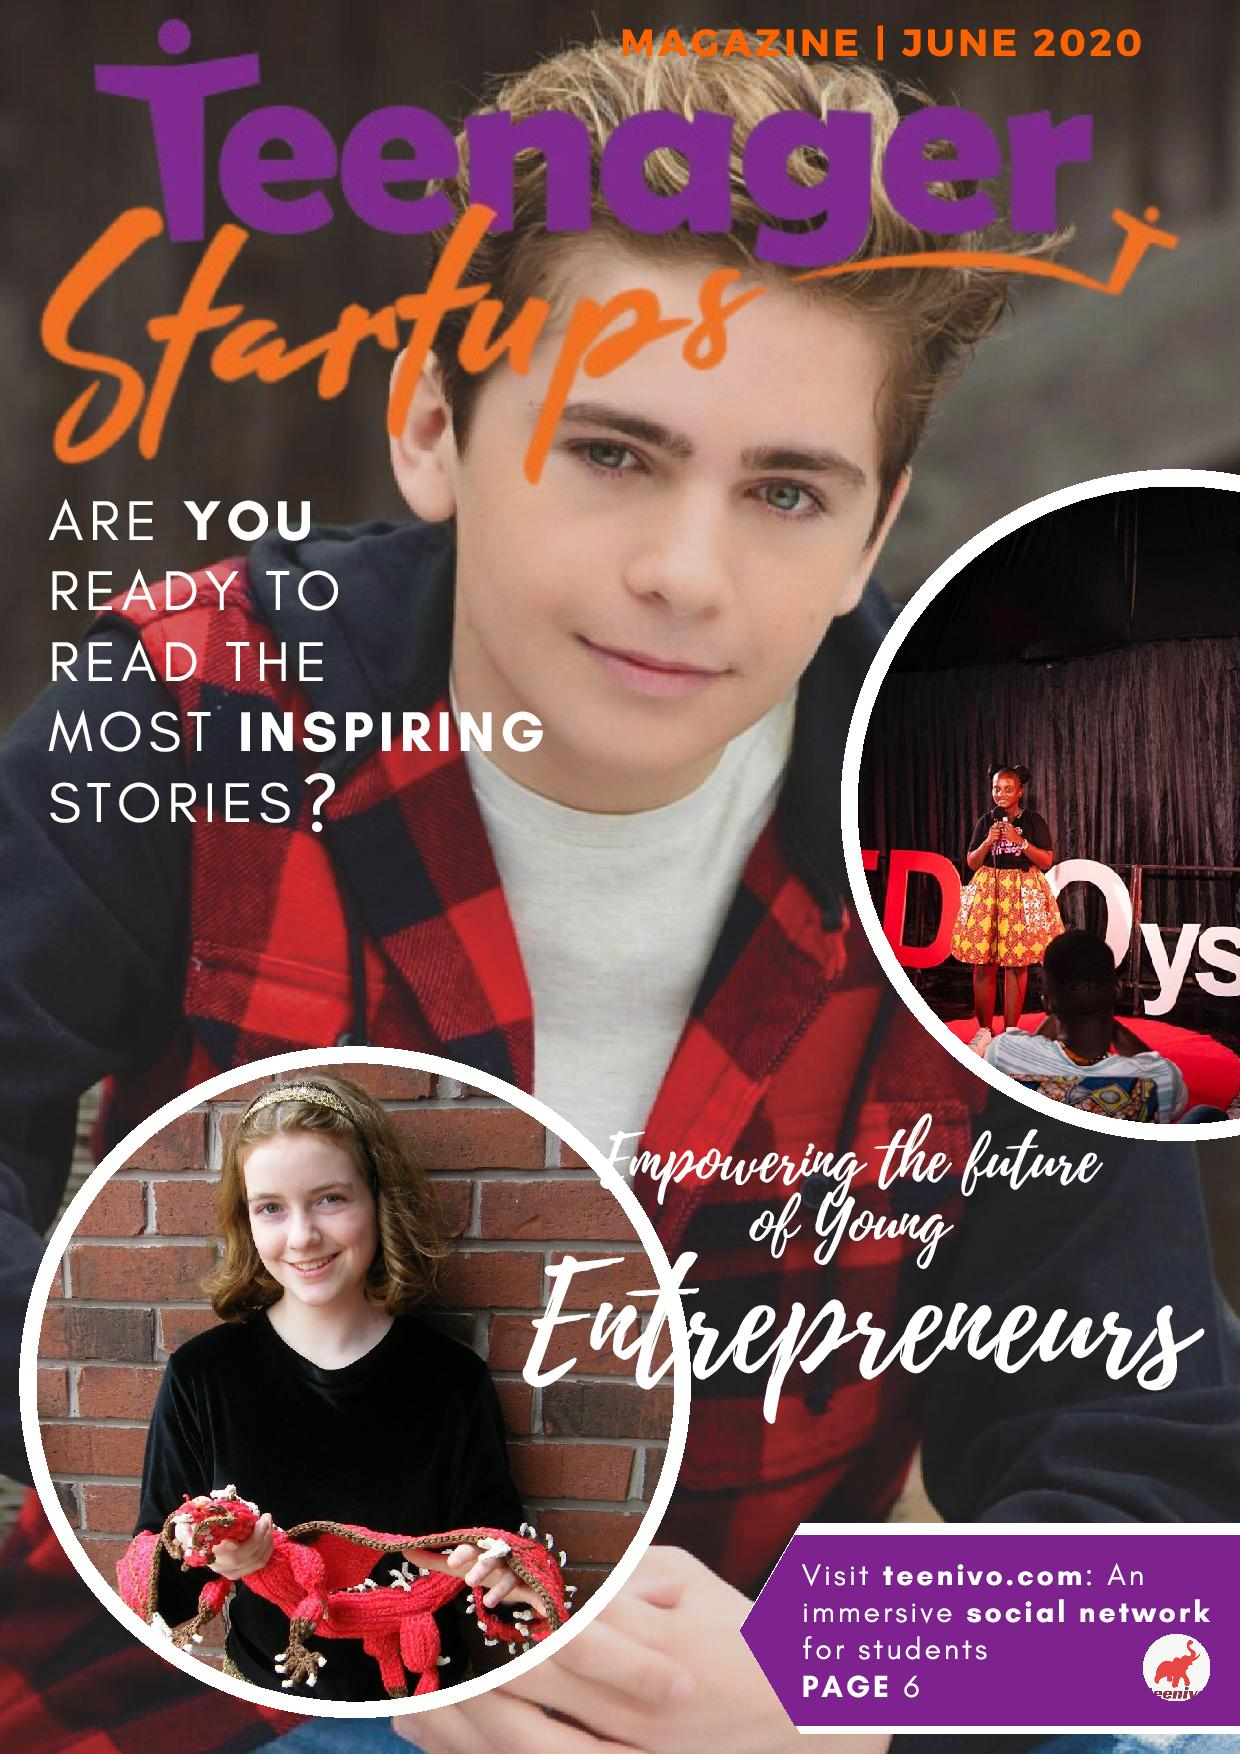 Teenager Startups Magazine - March 2020 2